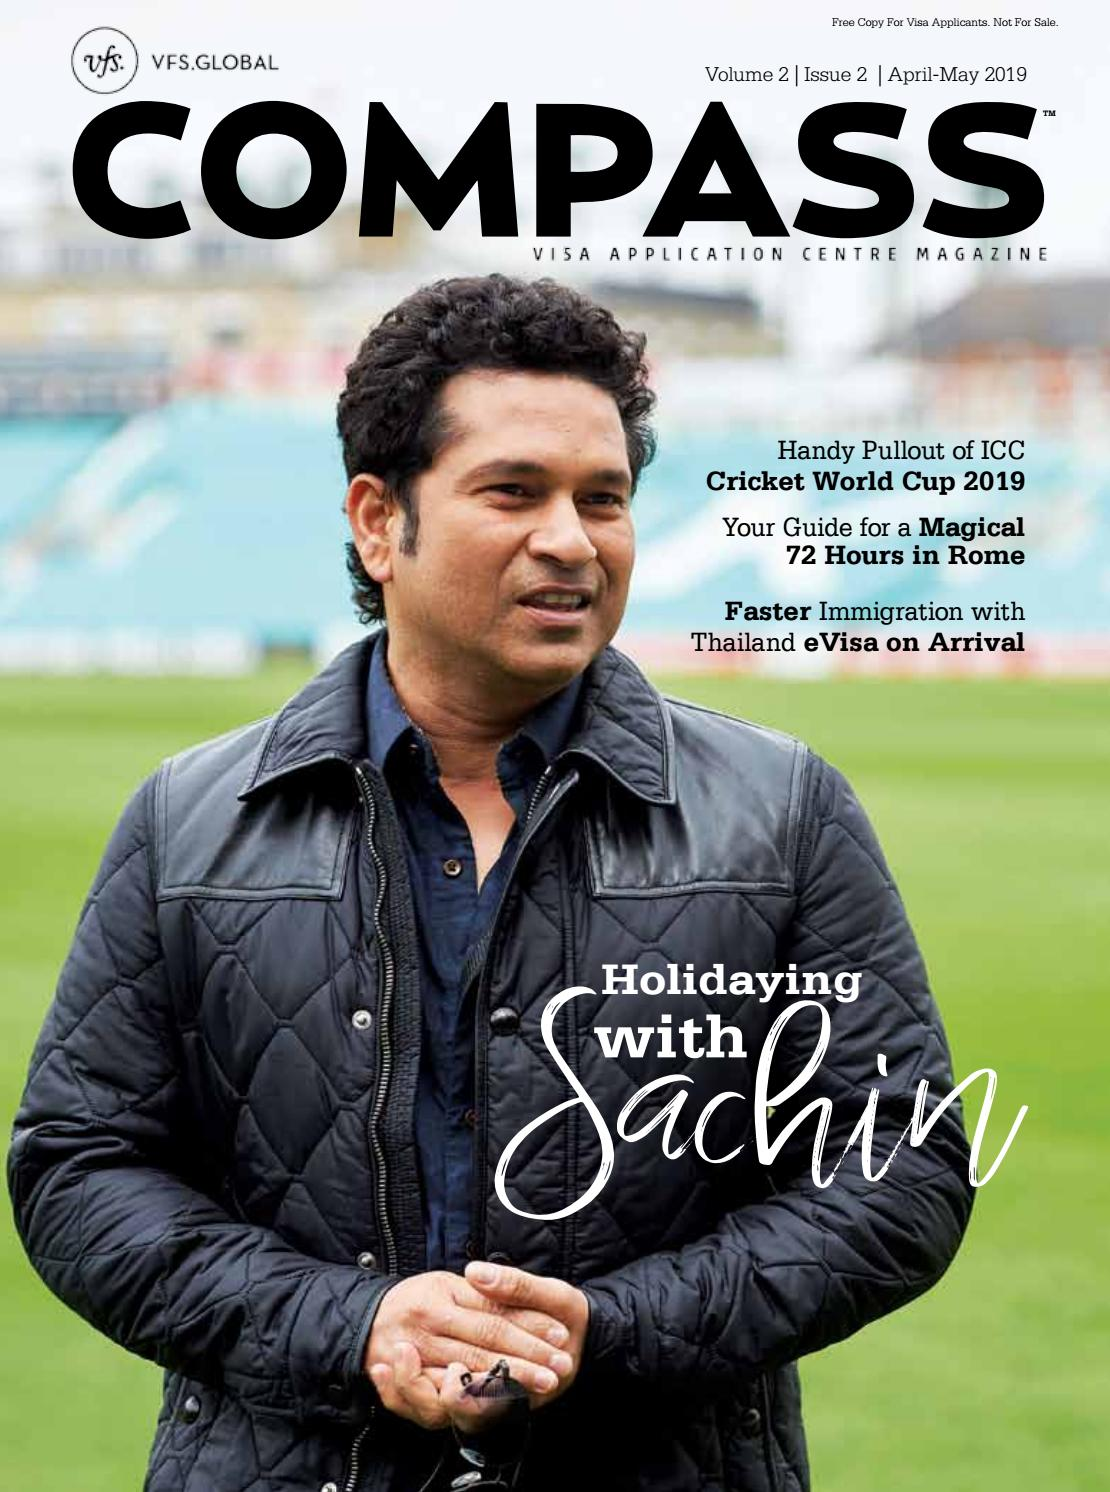 VFS Global COMPASS (India Edition) April - May 2019 by